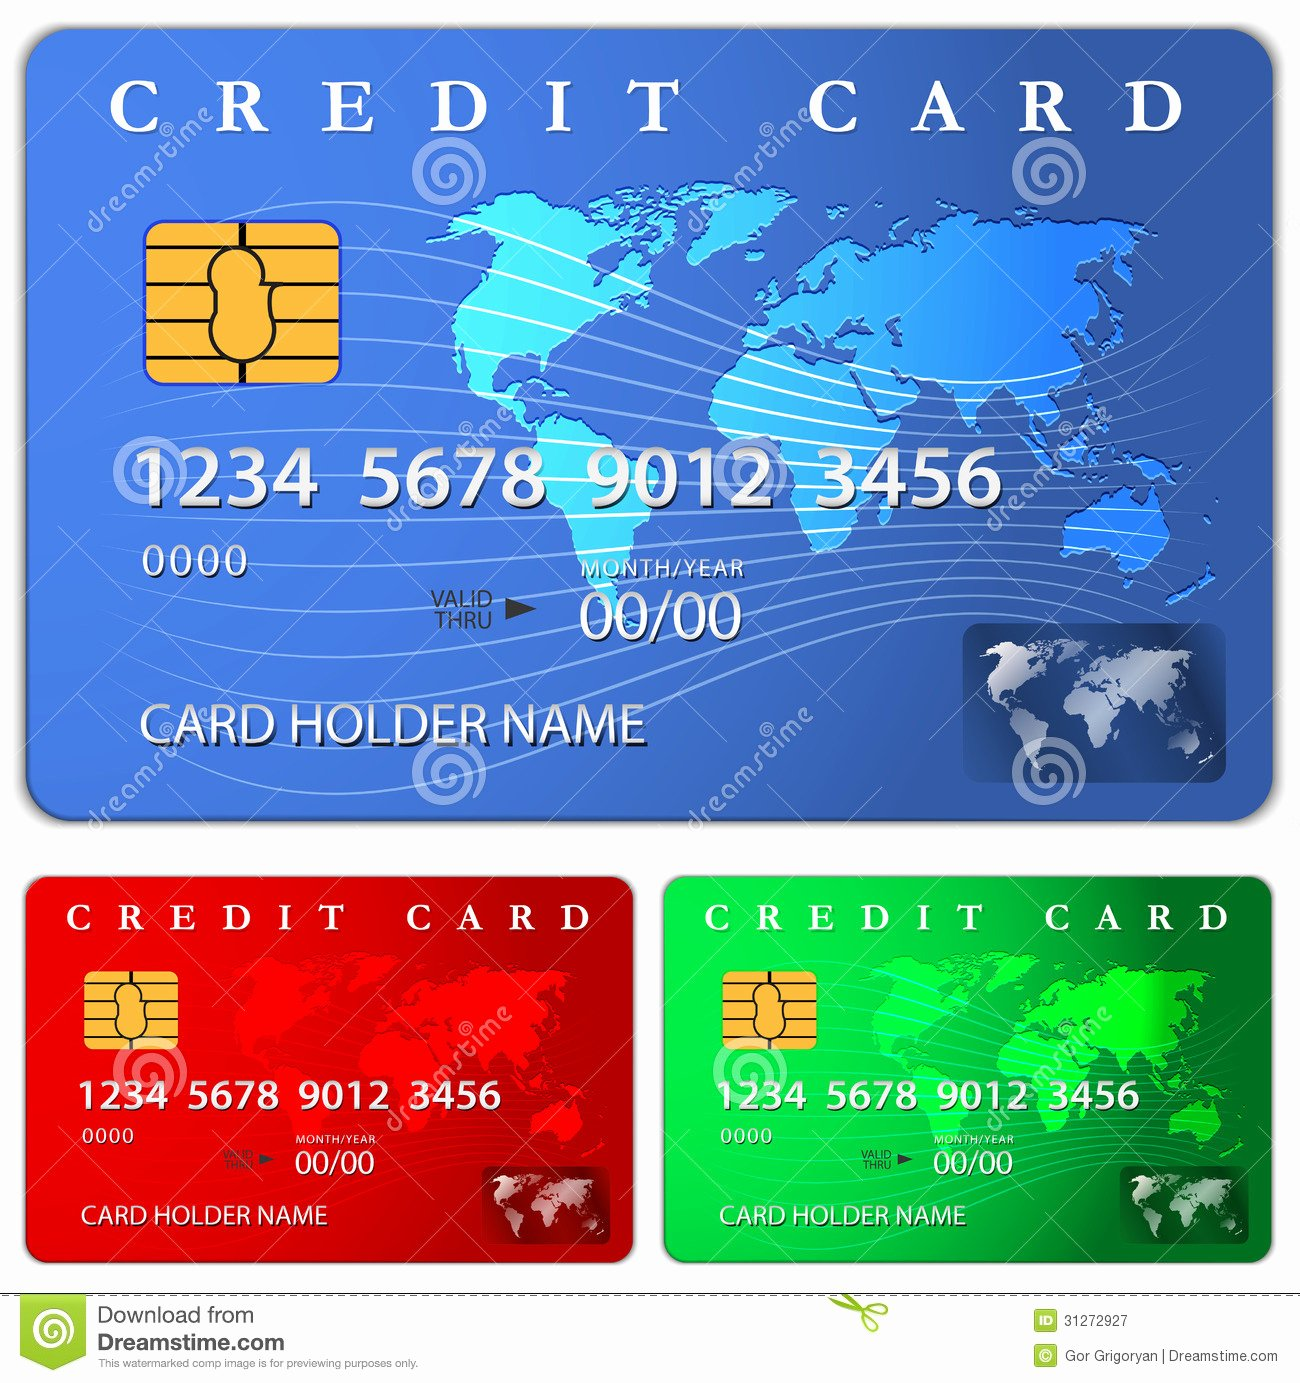 Credit Debit Card Design Template Royalty Free Stock